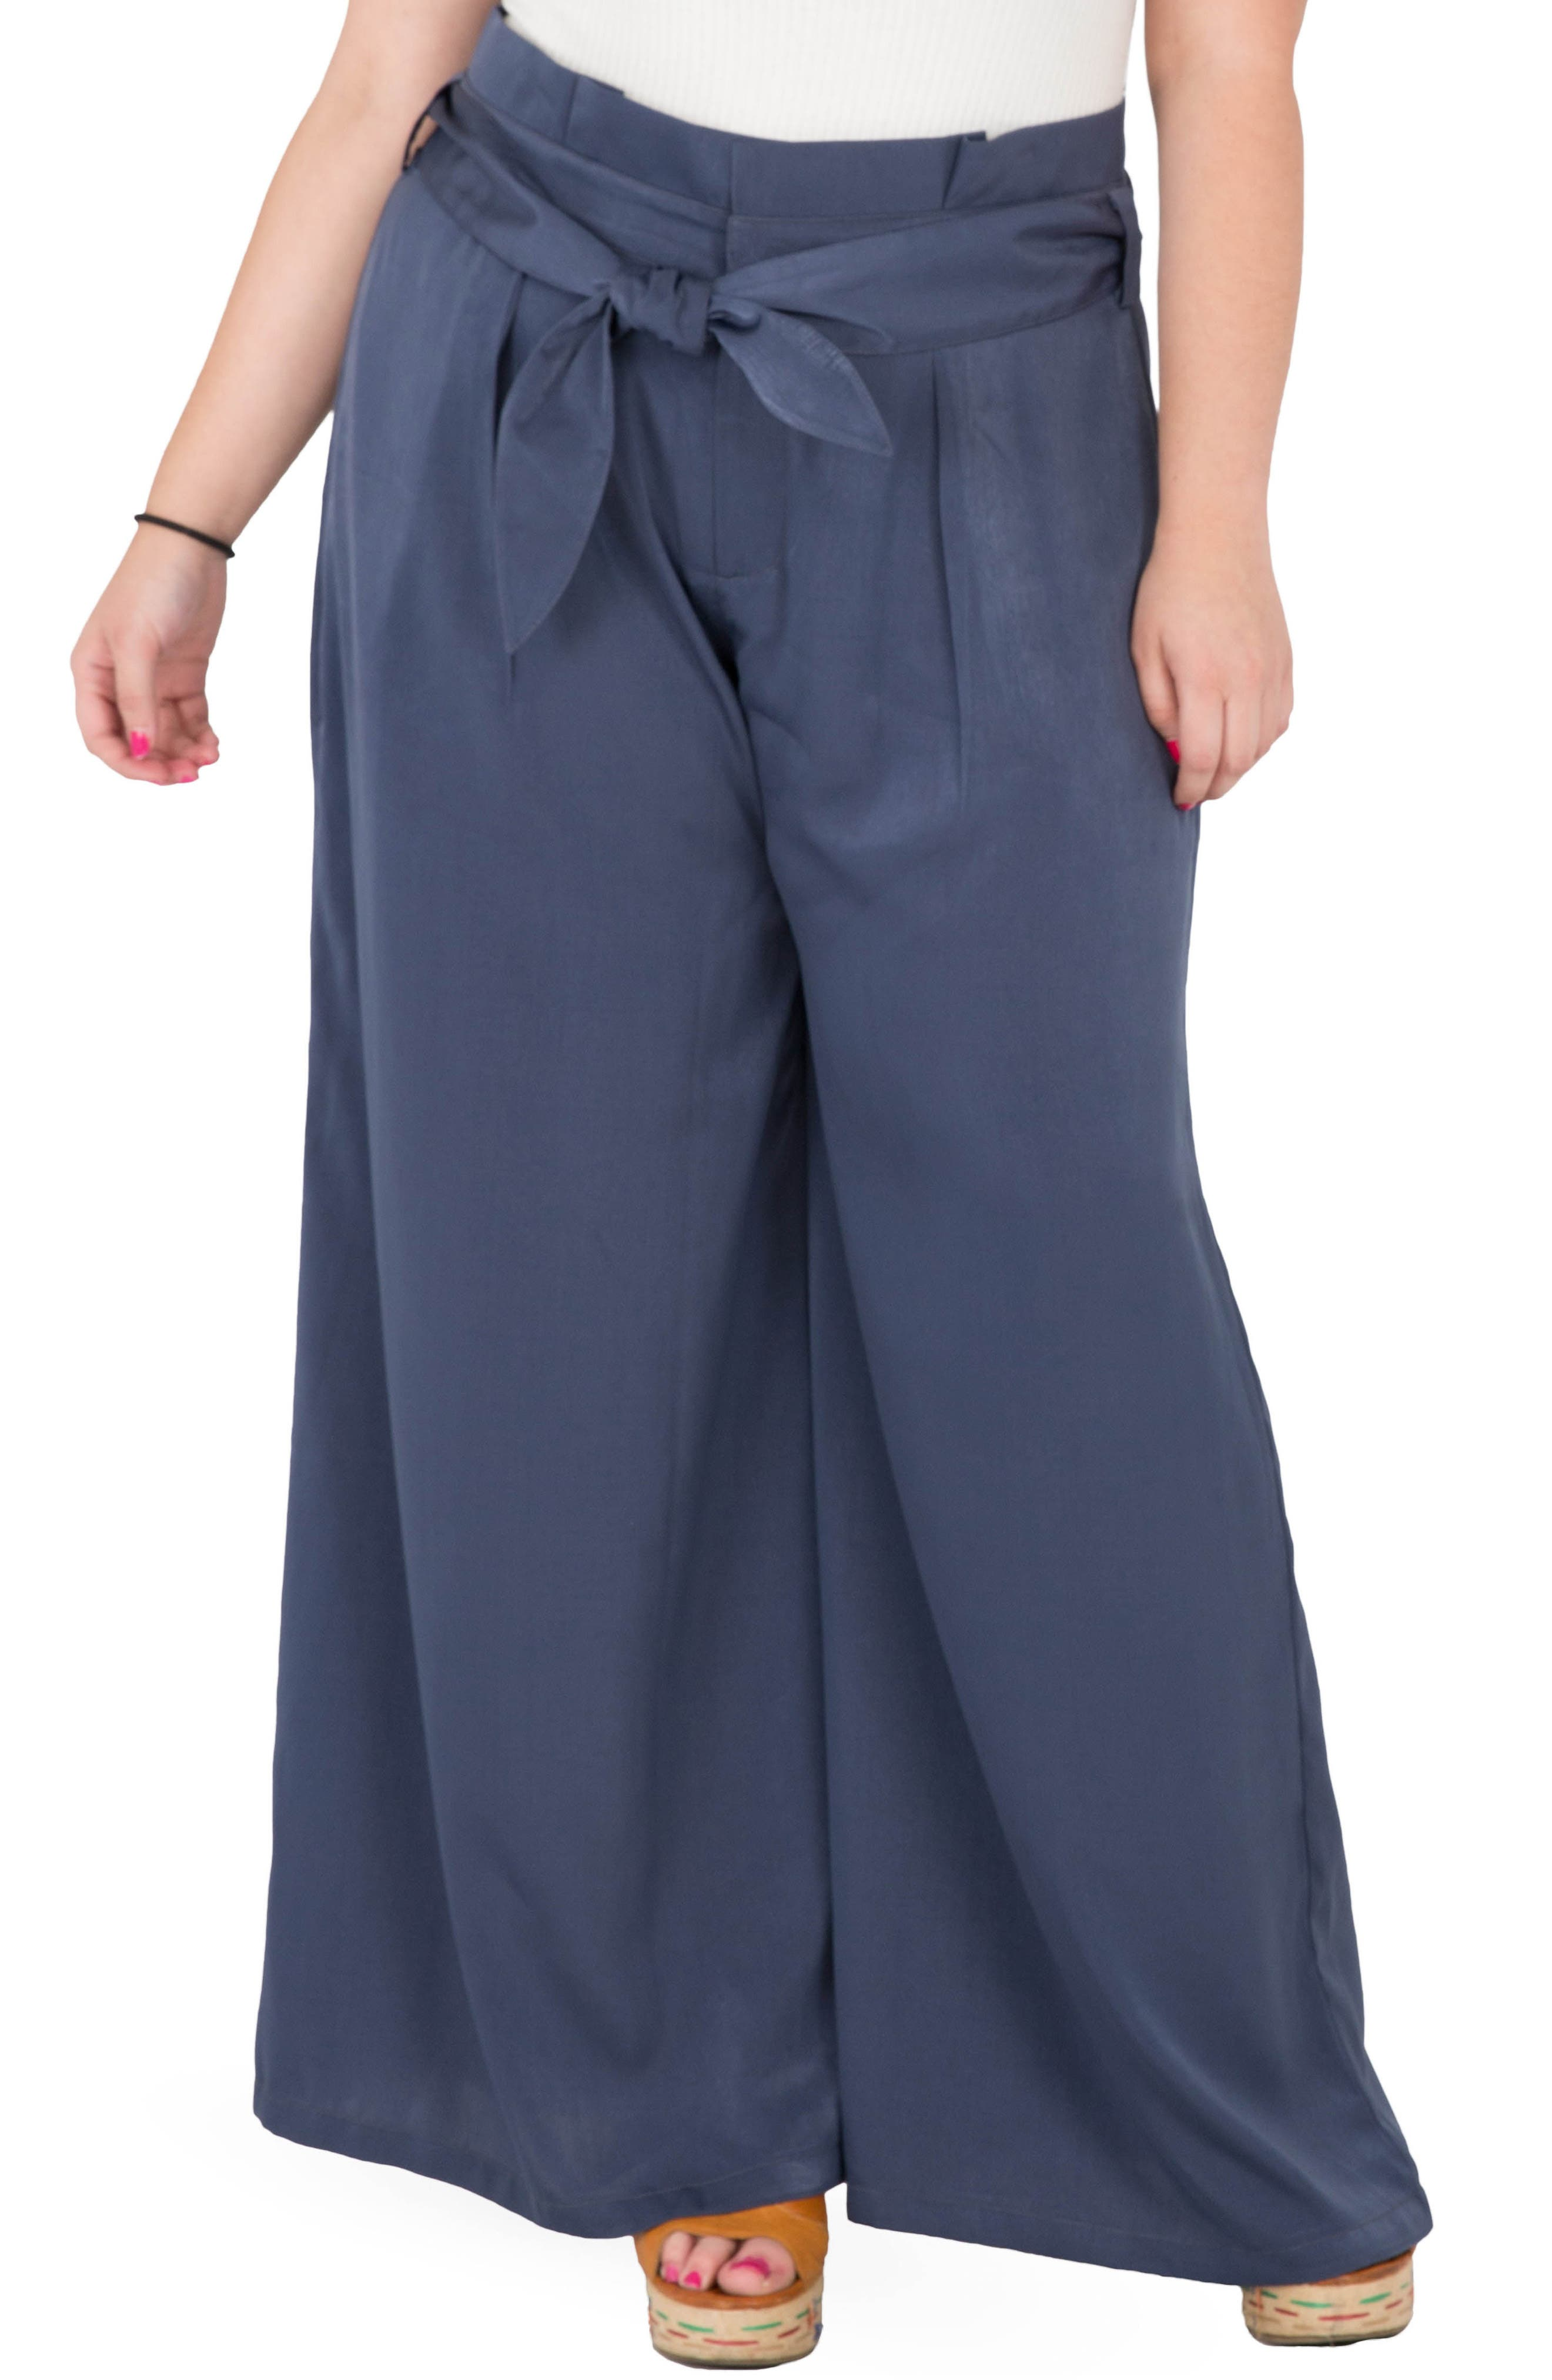 Sue Wide Leg Pants,                         Main,                         color, NAVY